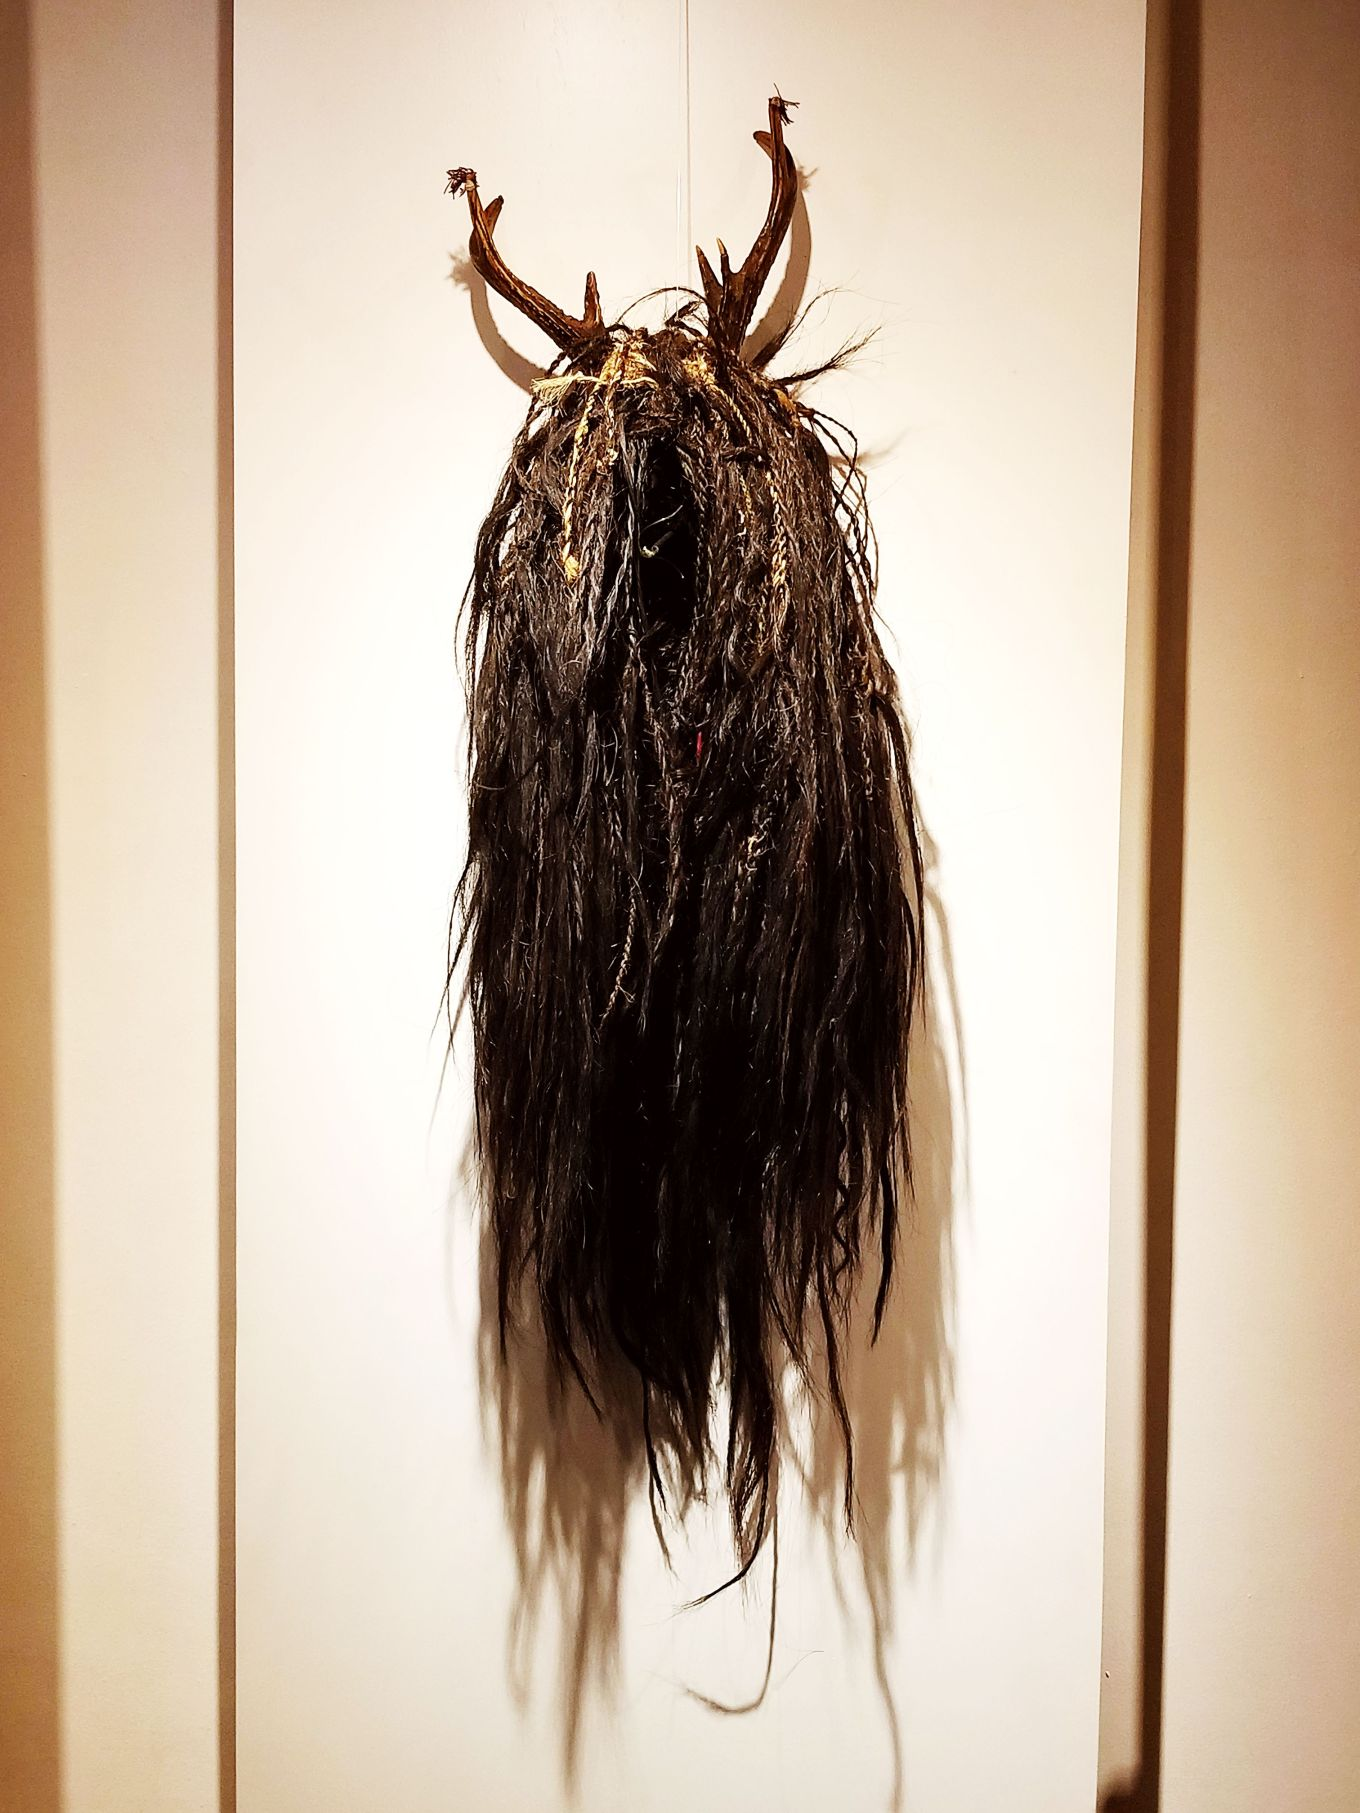 Wig with antlers, Museo Pumapongo